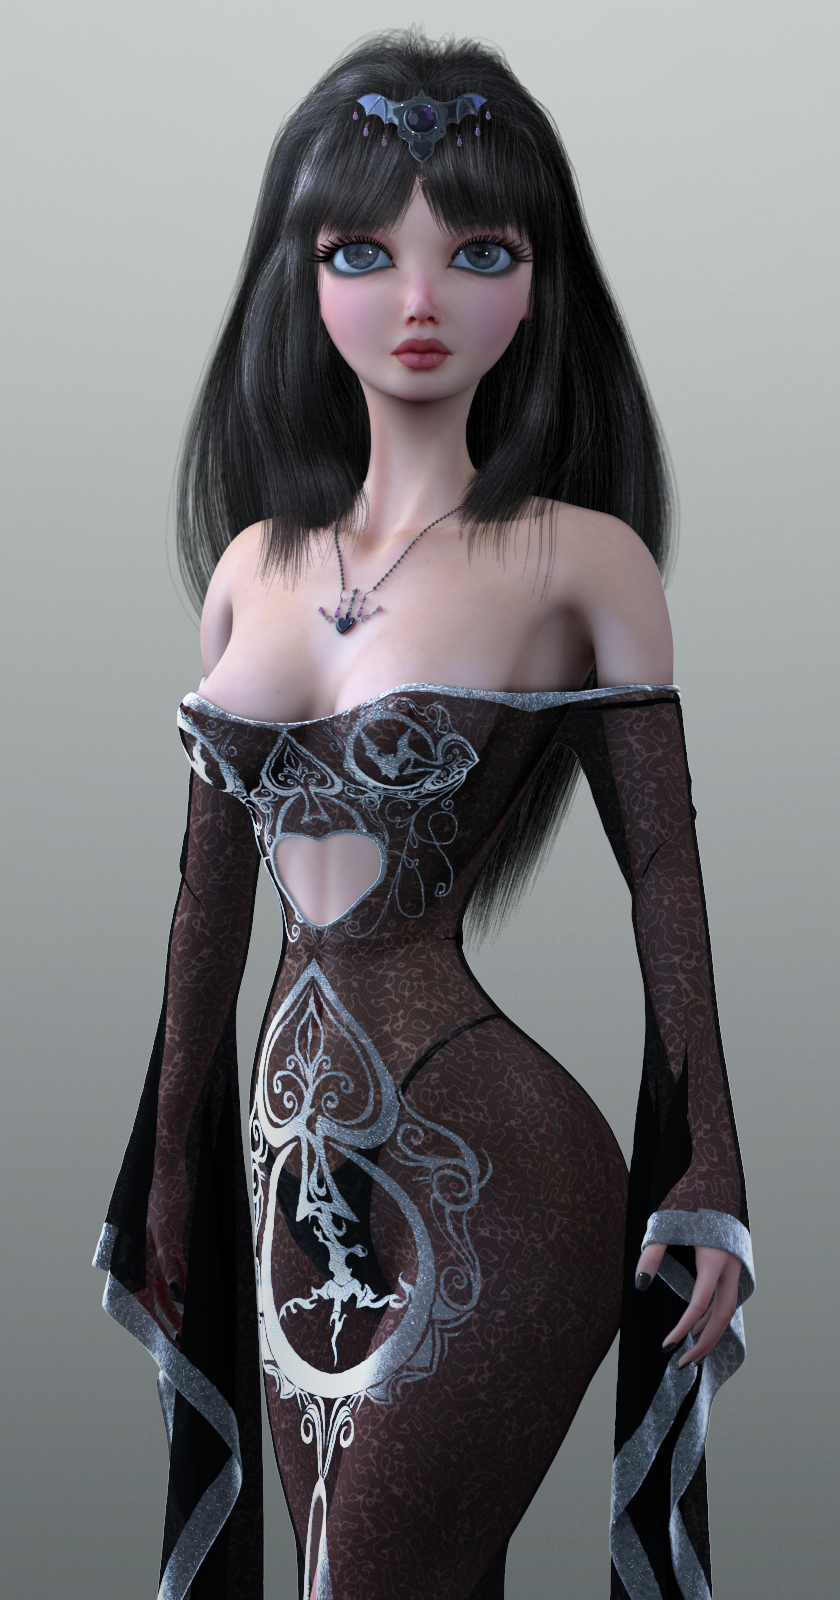 Vampiress doll 3d by Nauman Khan in 2014年9月的35个漂亮的CG女孩